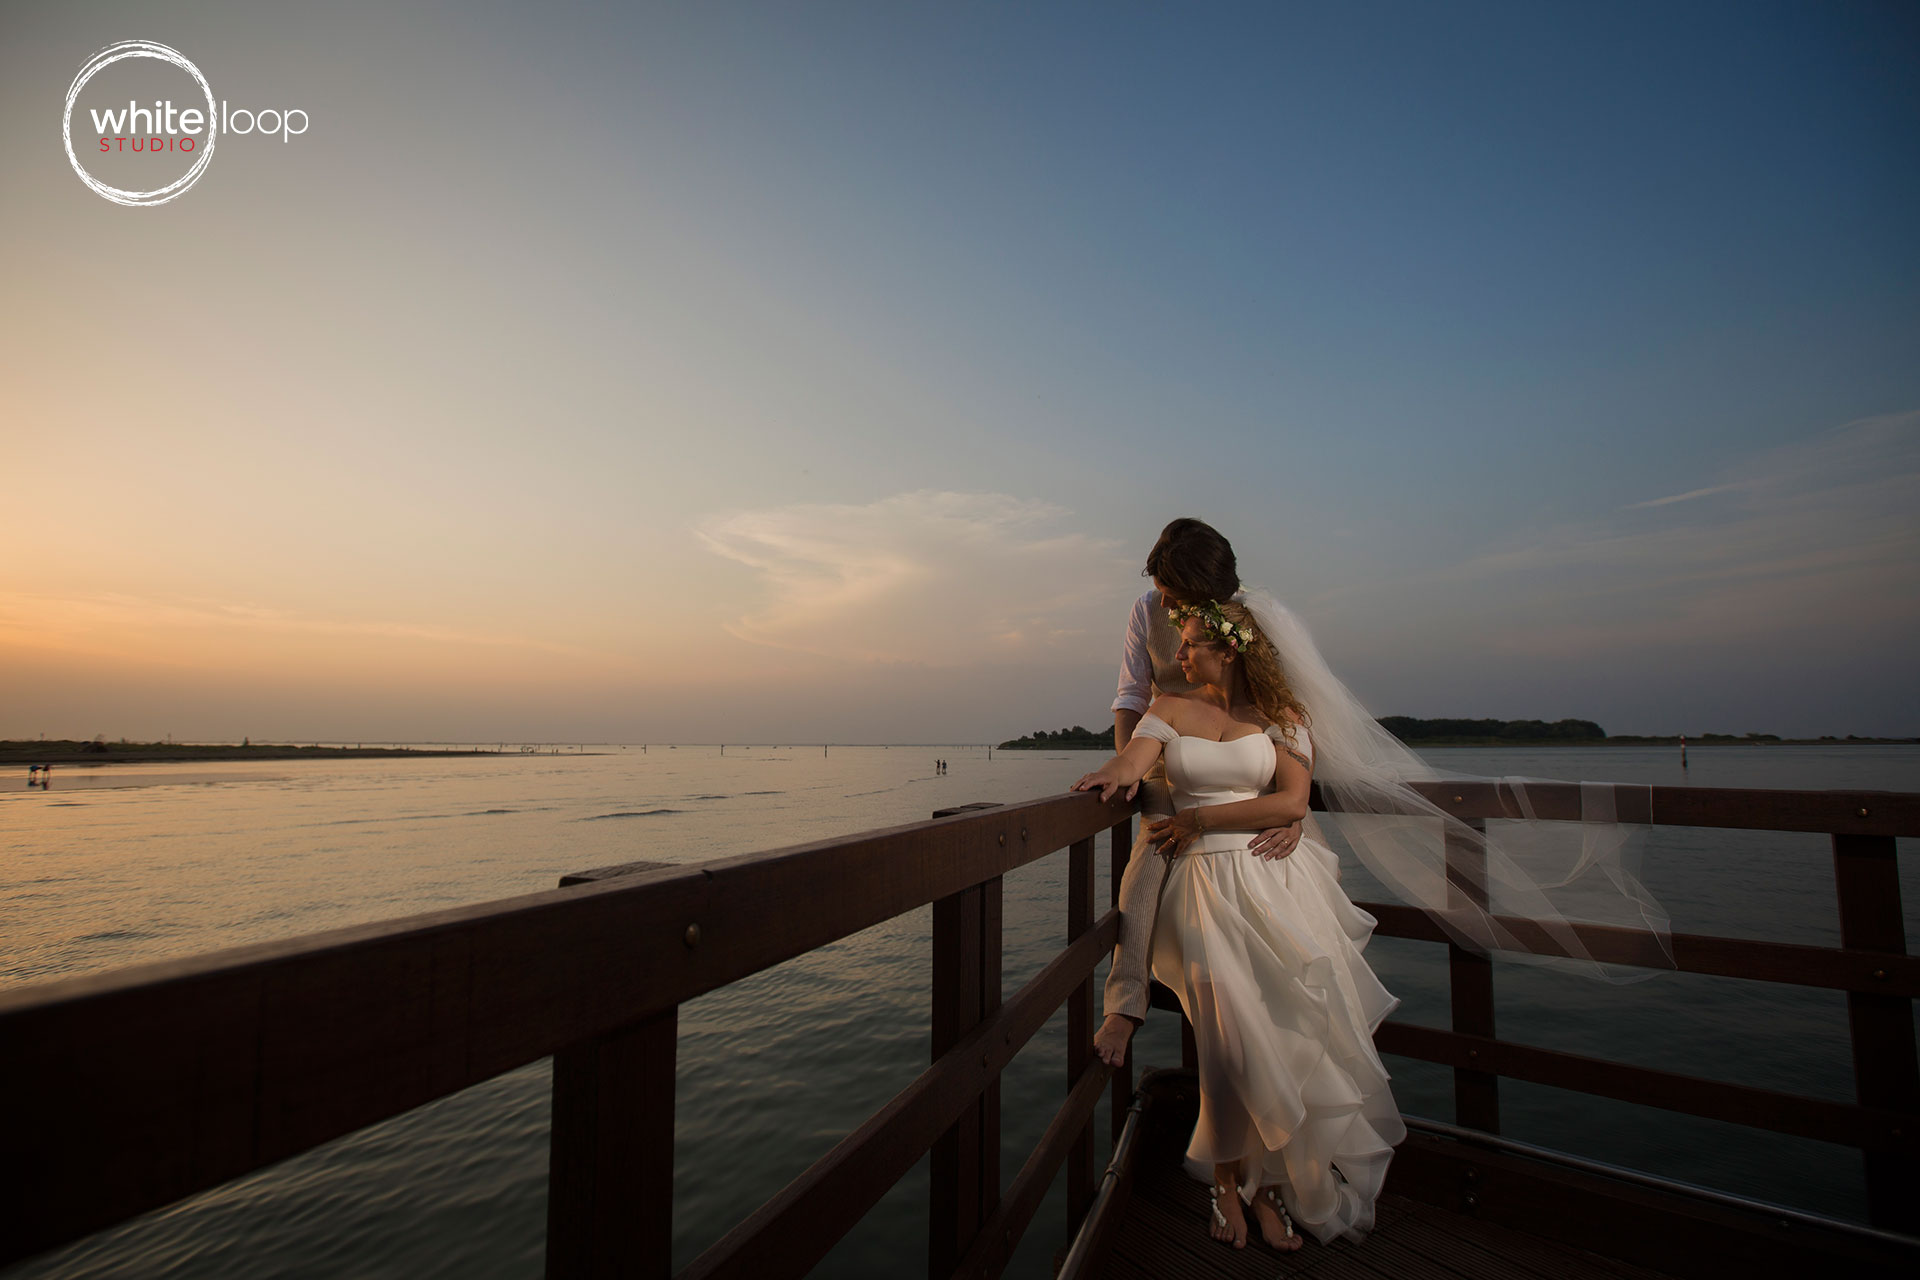 The bride and groom holding each other on a dock watching the sunset on the horizon of the sea.